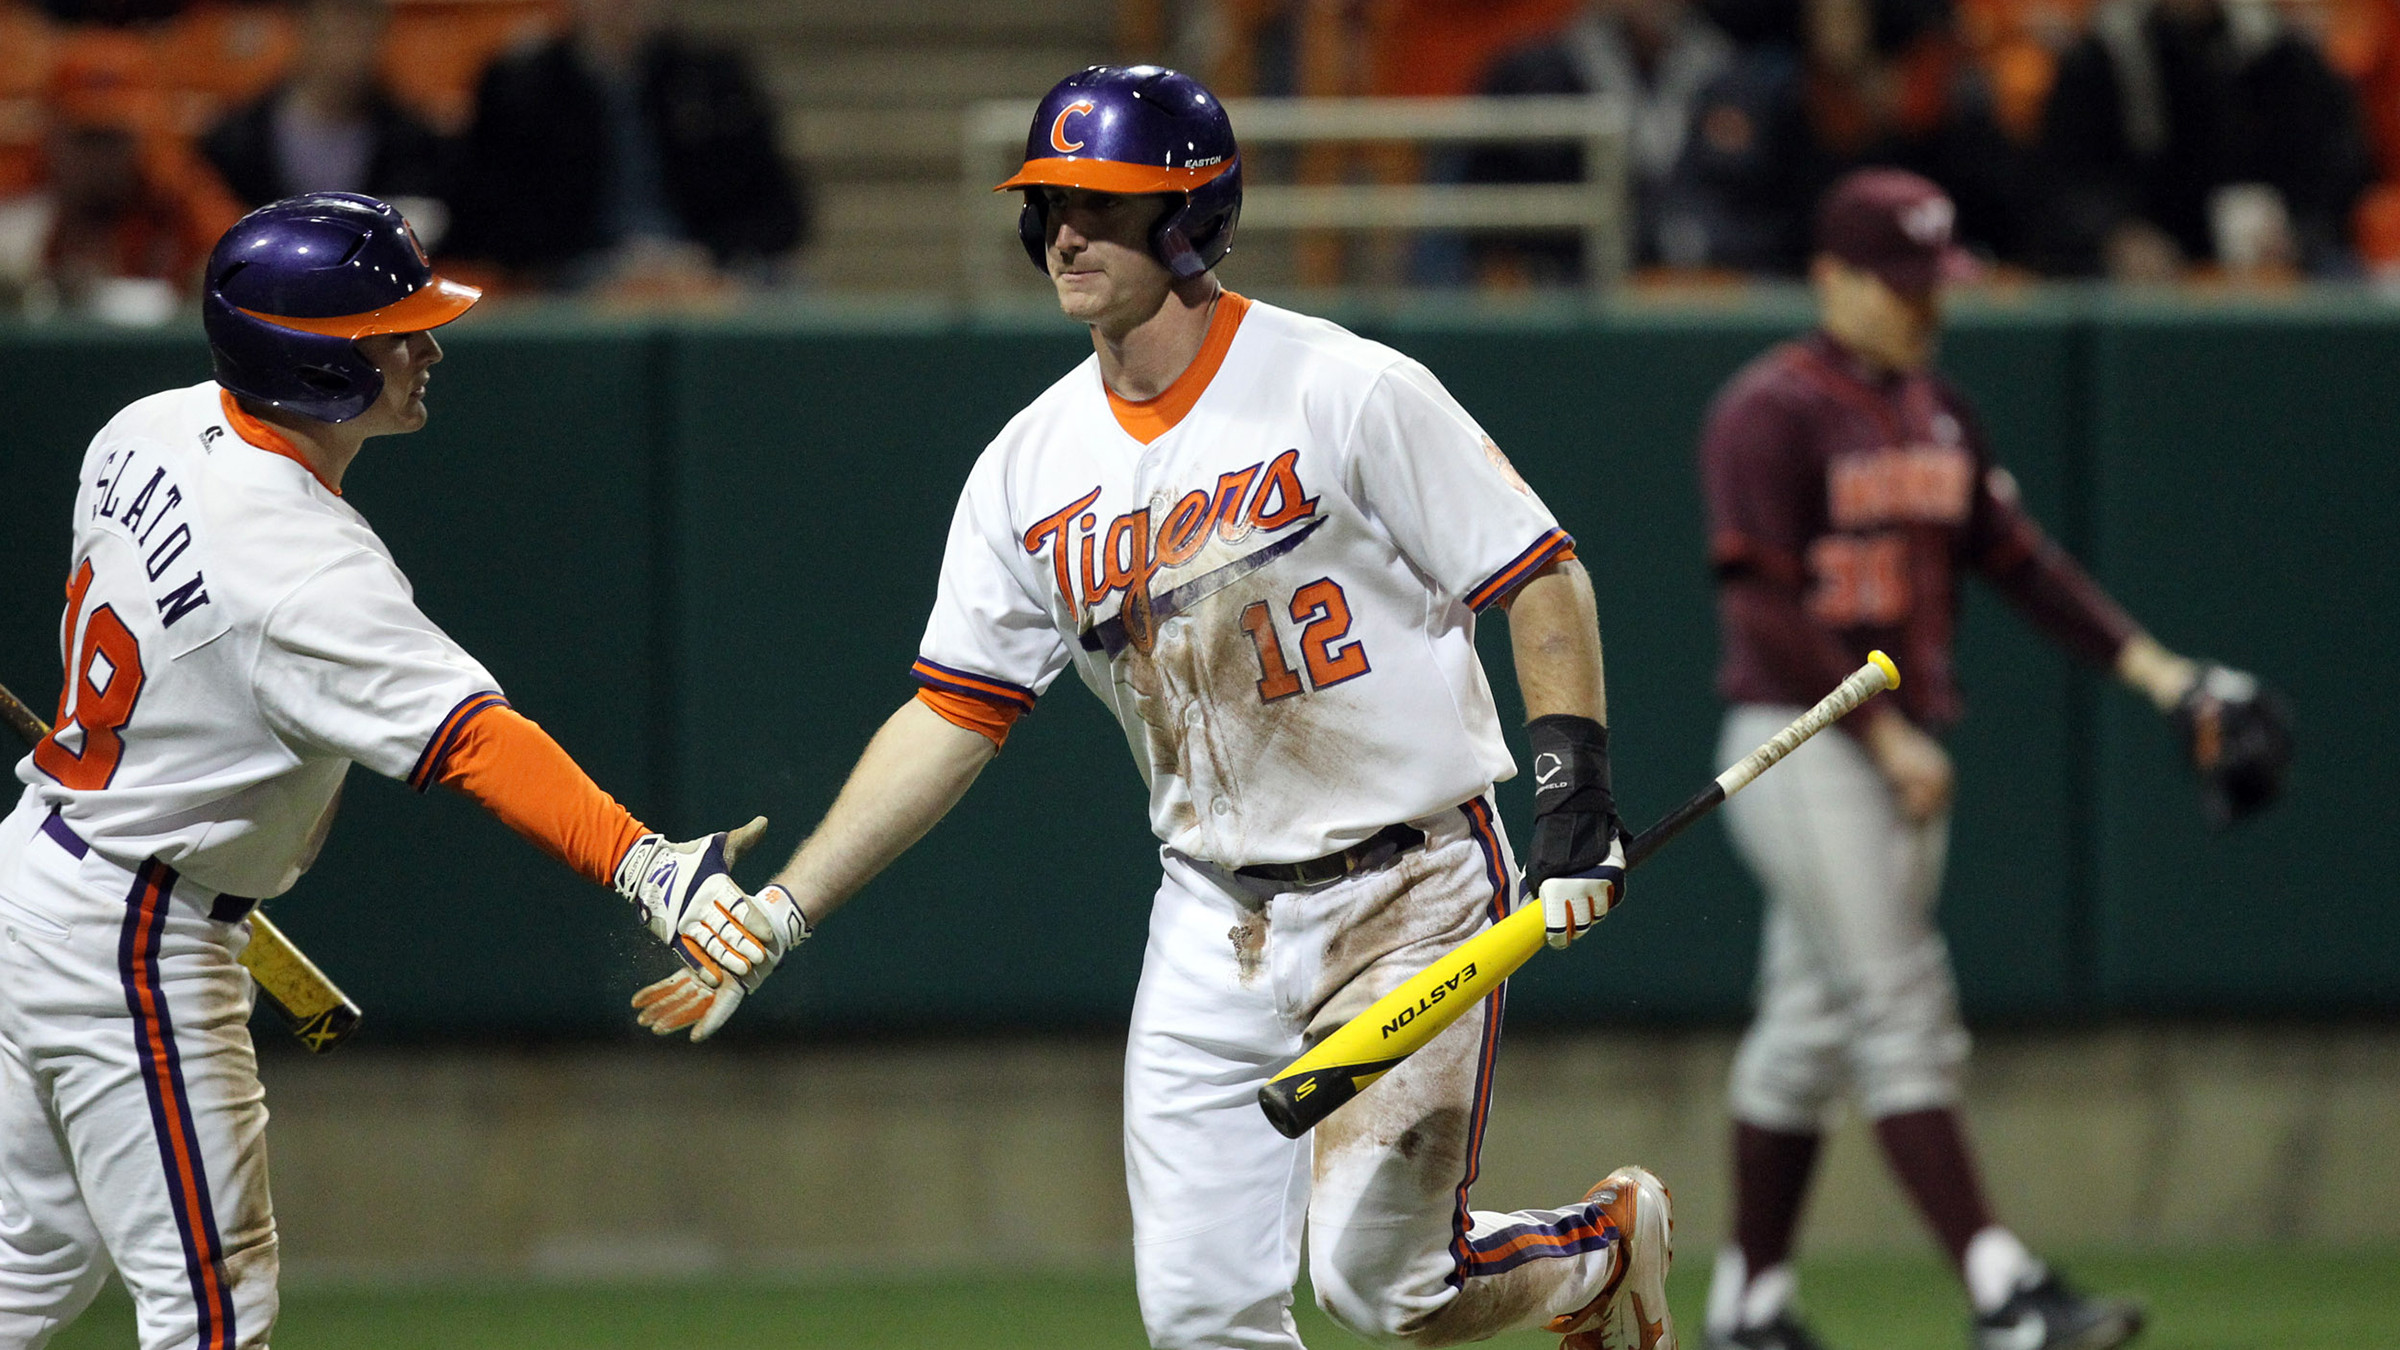 #15 Tigers Walk Off With 7-6 Win Over Hokies Friday in ACC Opener